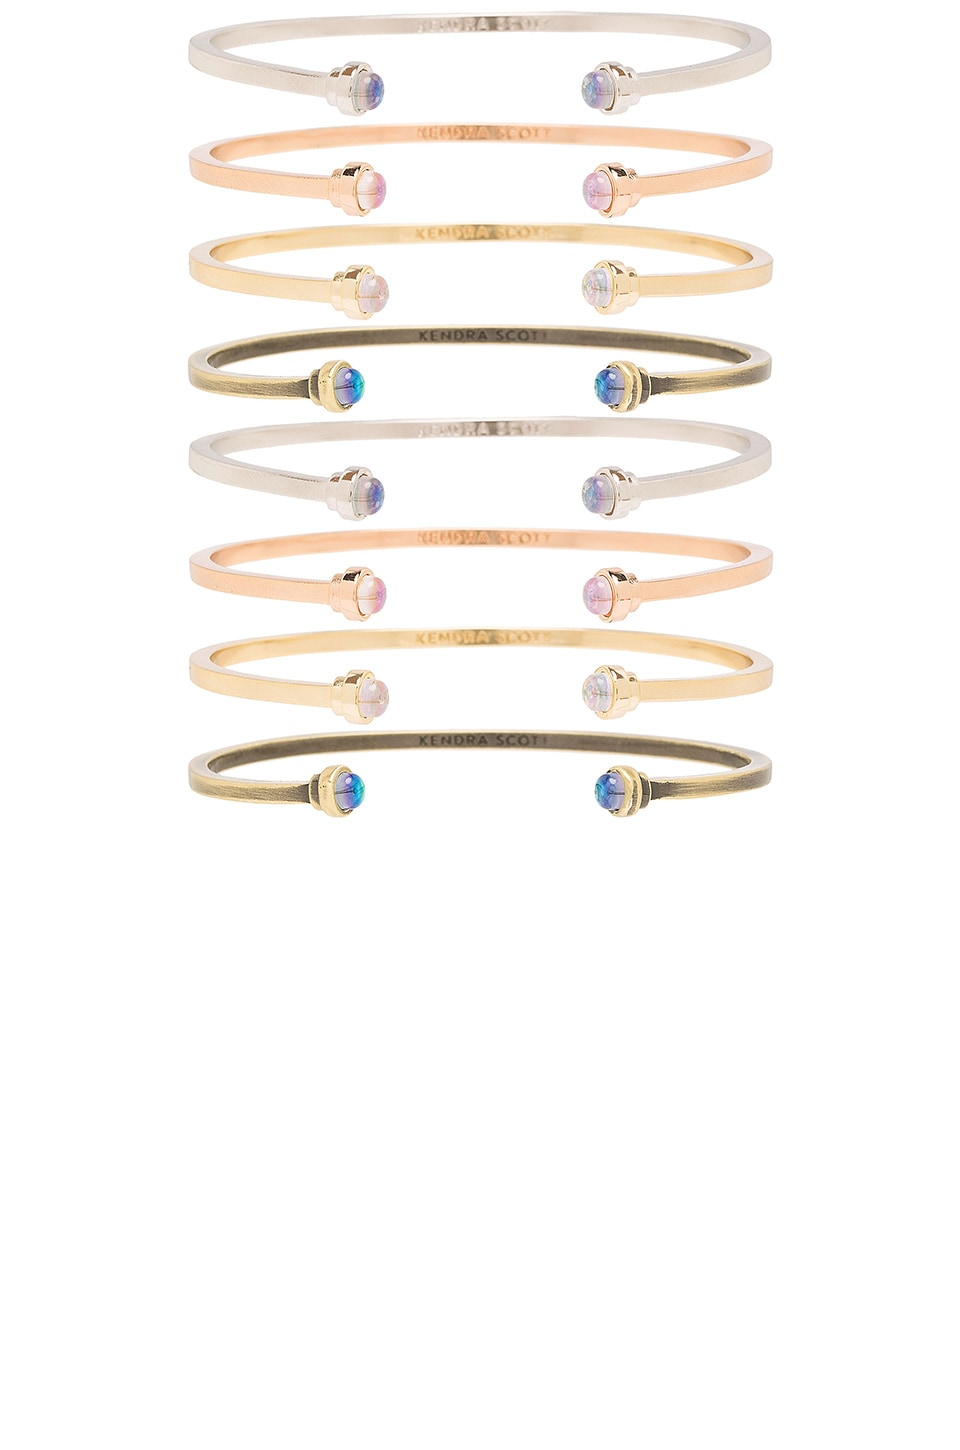 Kendra Scott Kriss Set Of 8 Bracelet in Gold, Rhodium, Rose Gold, Antique Brass & Dichroic Glass